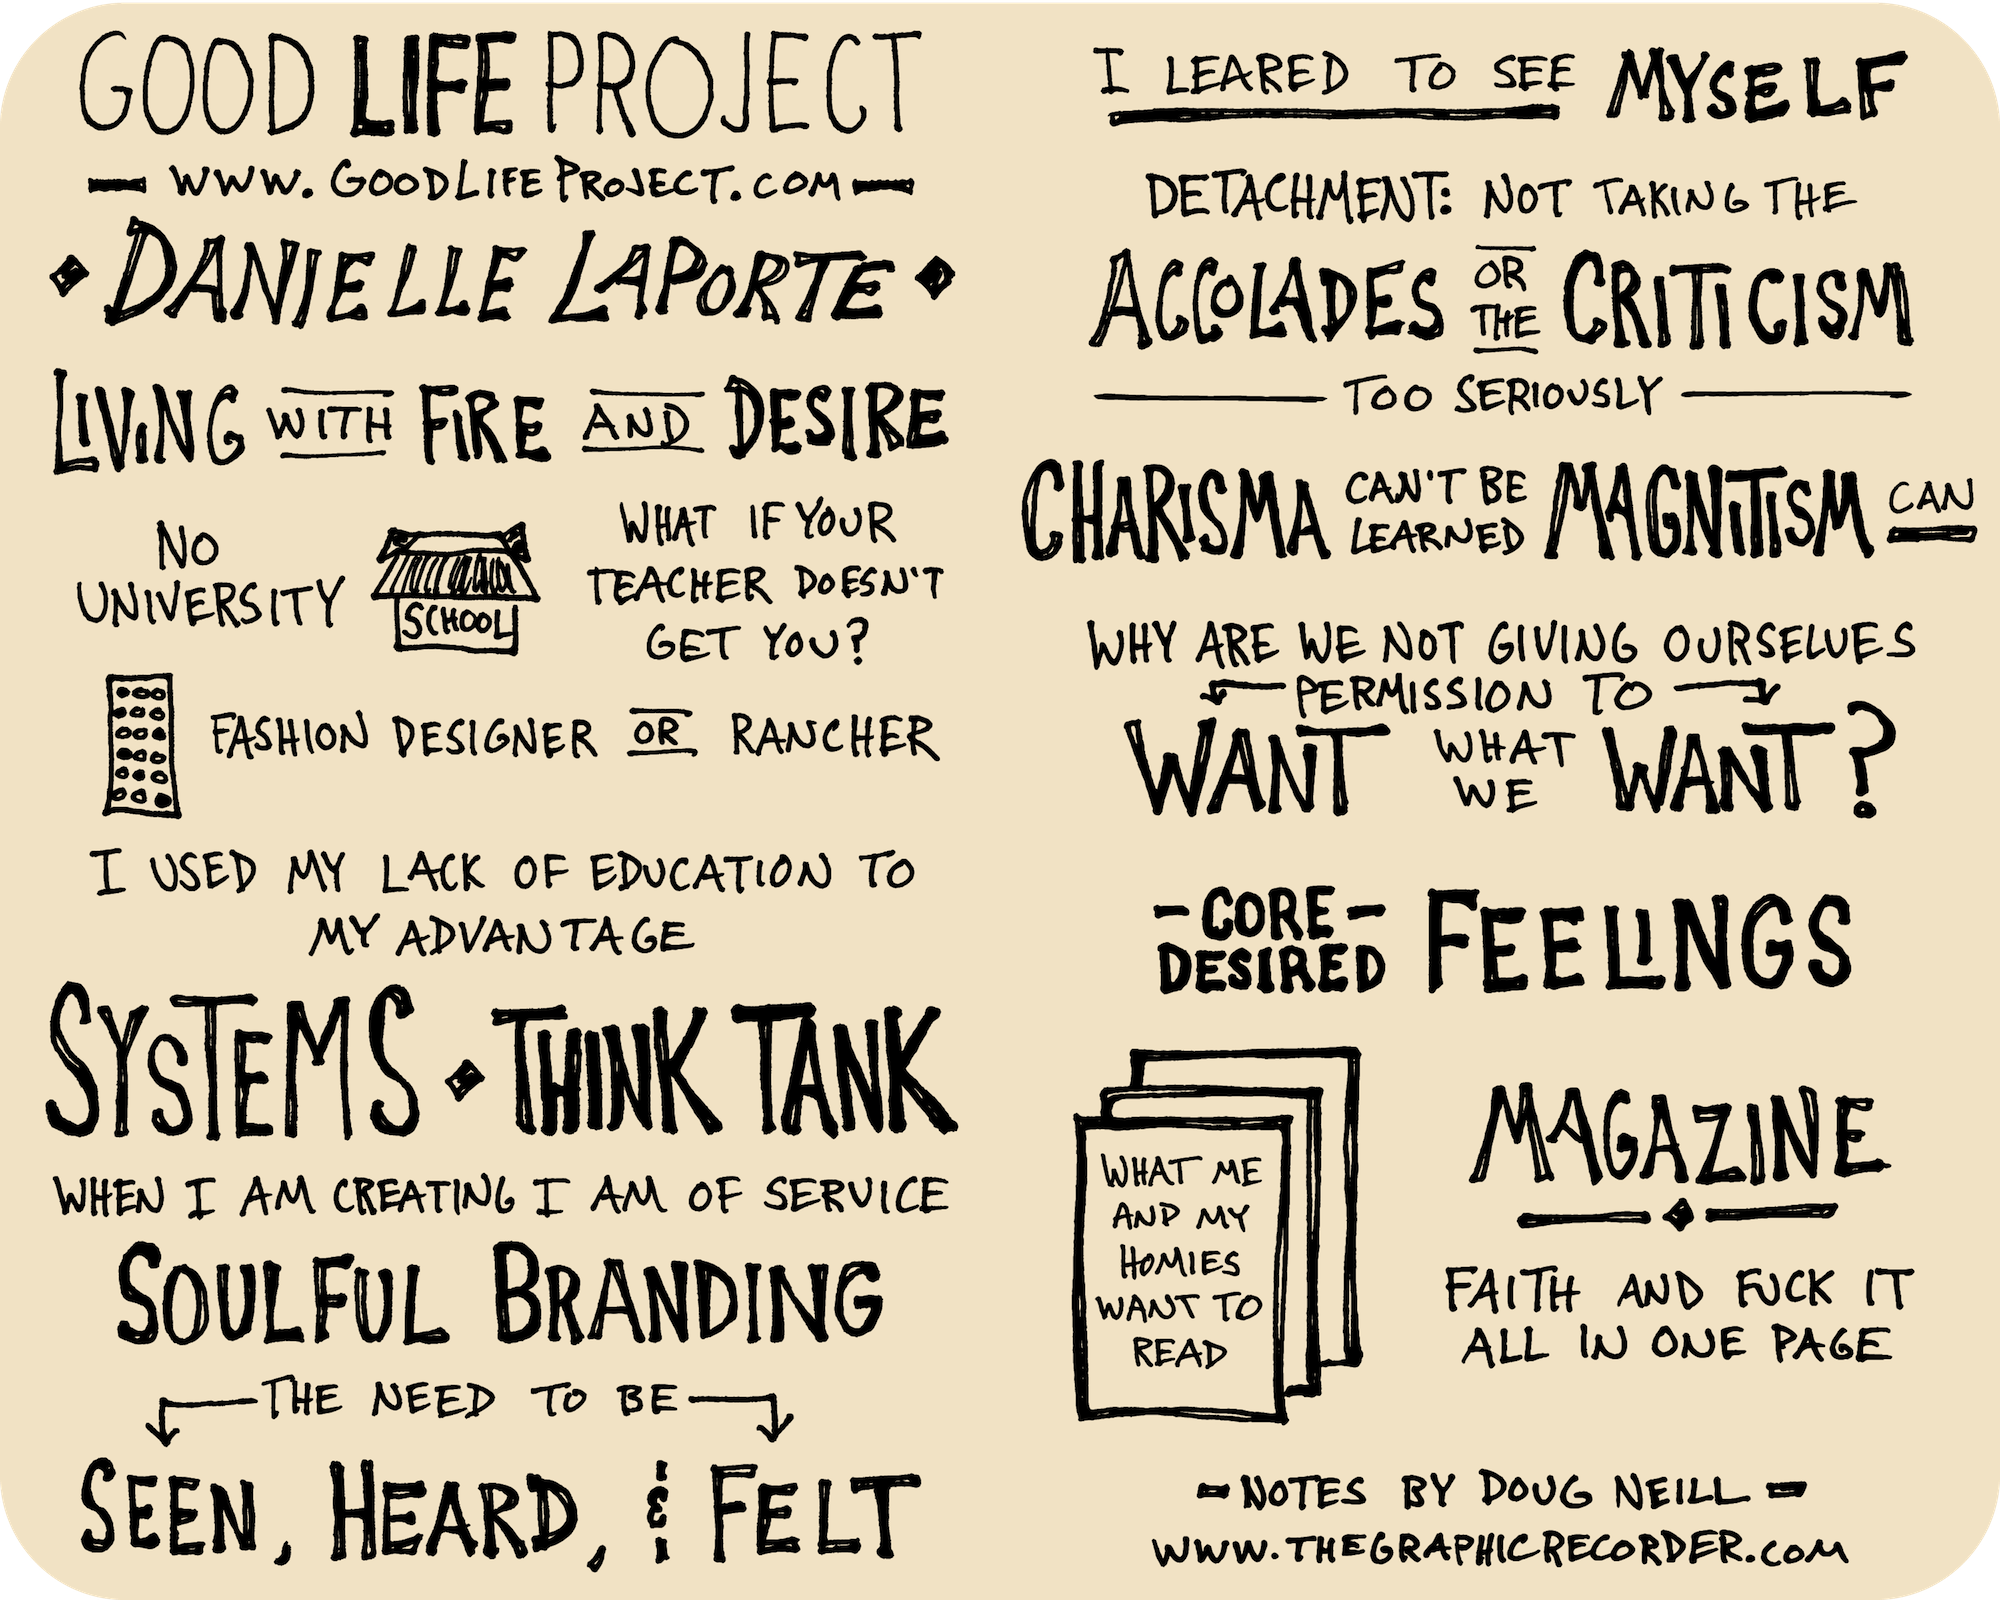 Danielle LaPorte Good Life Project Interview Sketchnotes - Jonathan Fields, Doug Neill, living with fire and desire, think tank, core desired feelings